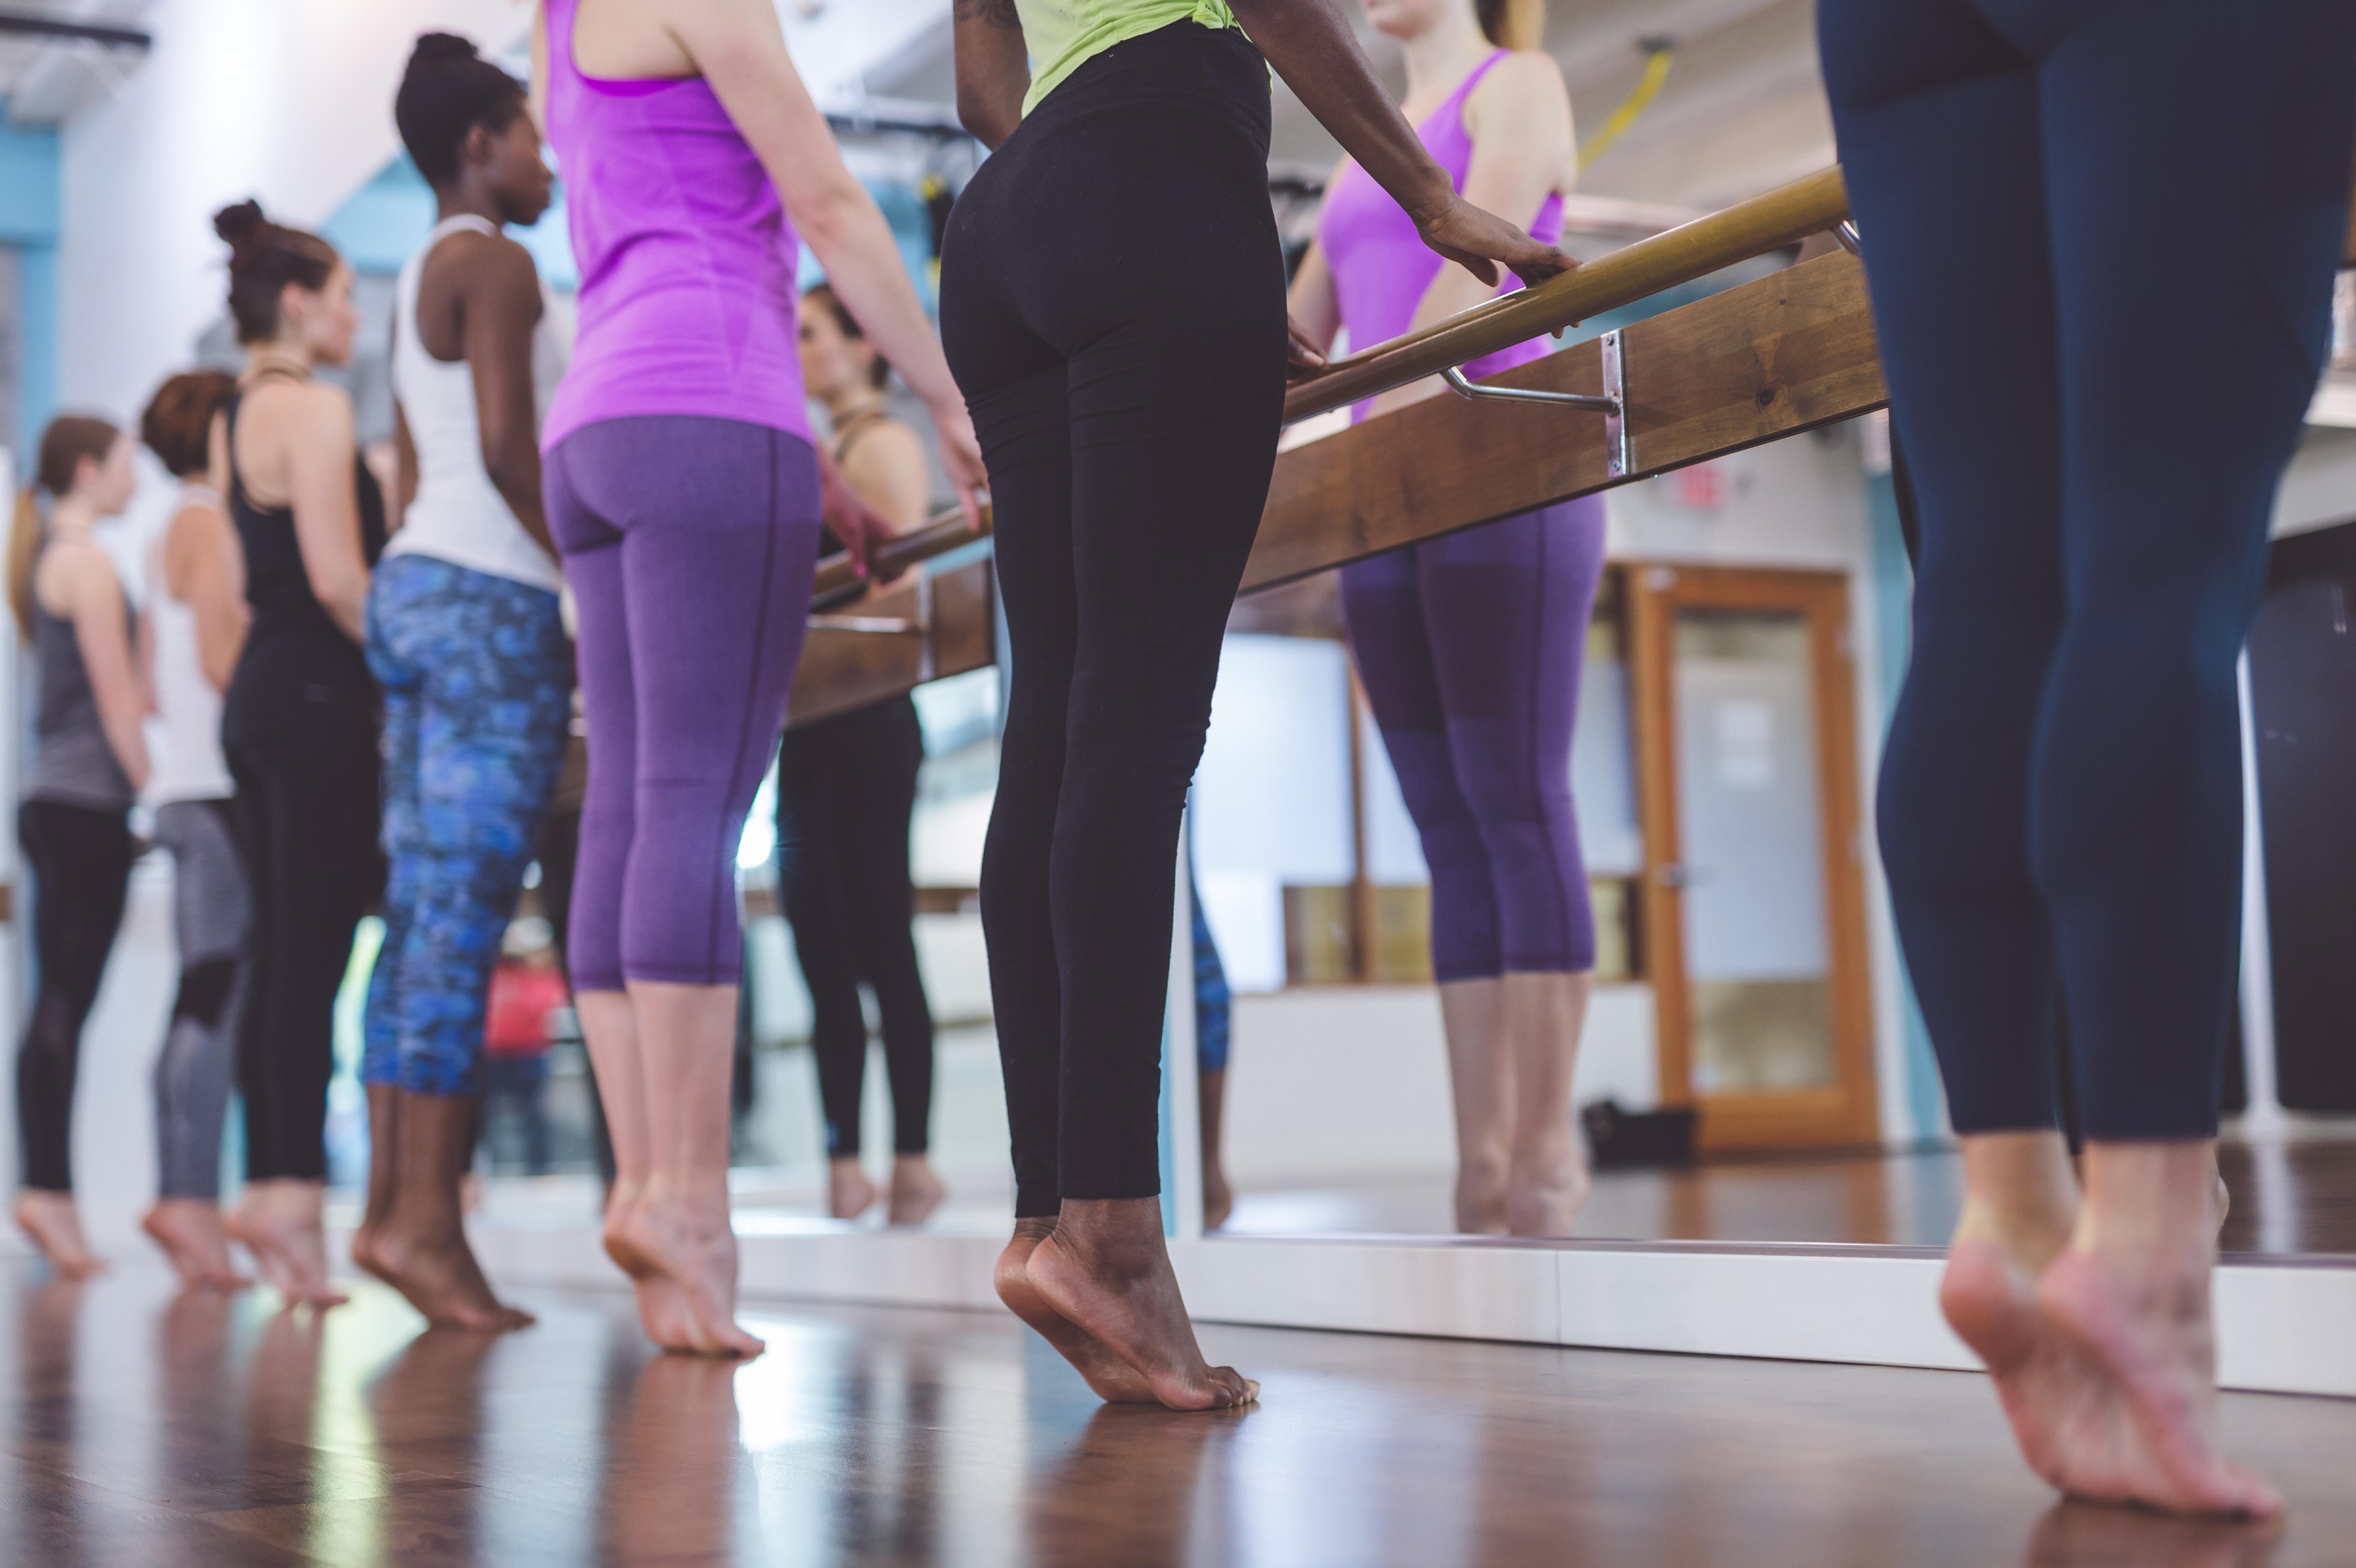 Group of Women Doing Barre + TRX Workout